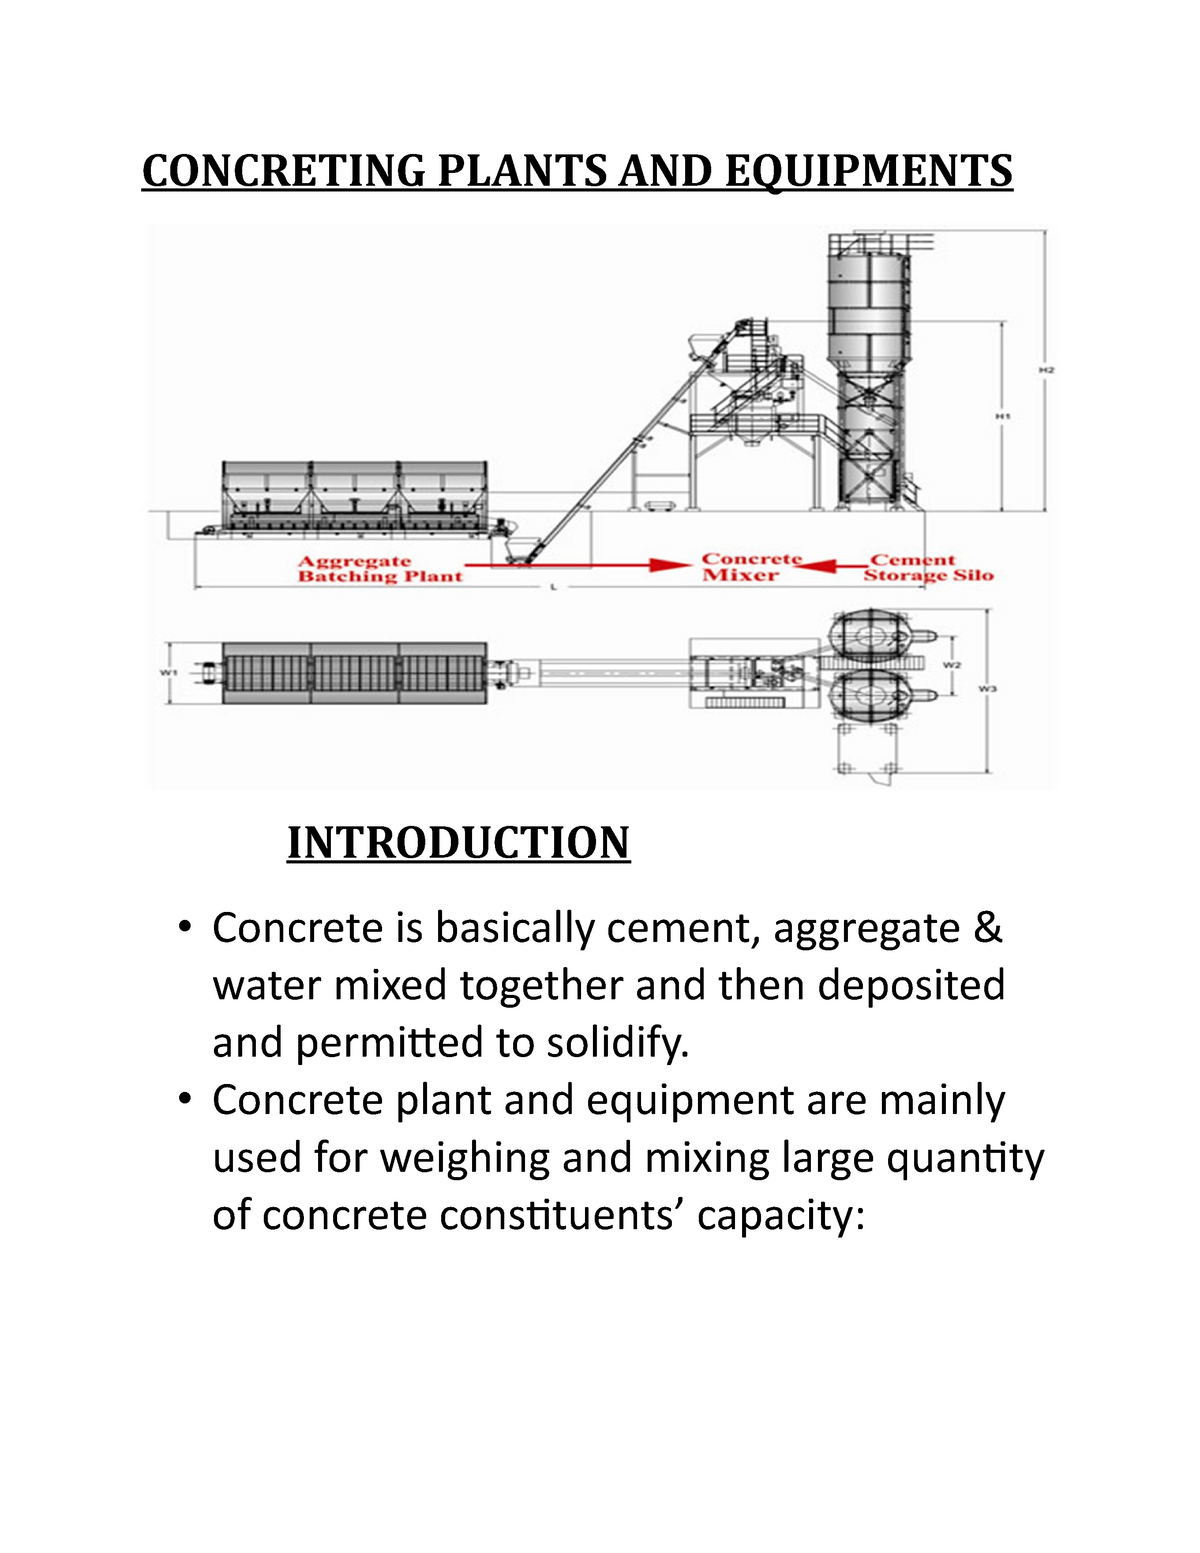 Concreting Plants AND Equipments - Management accounting